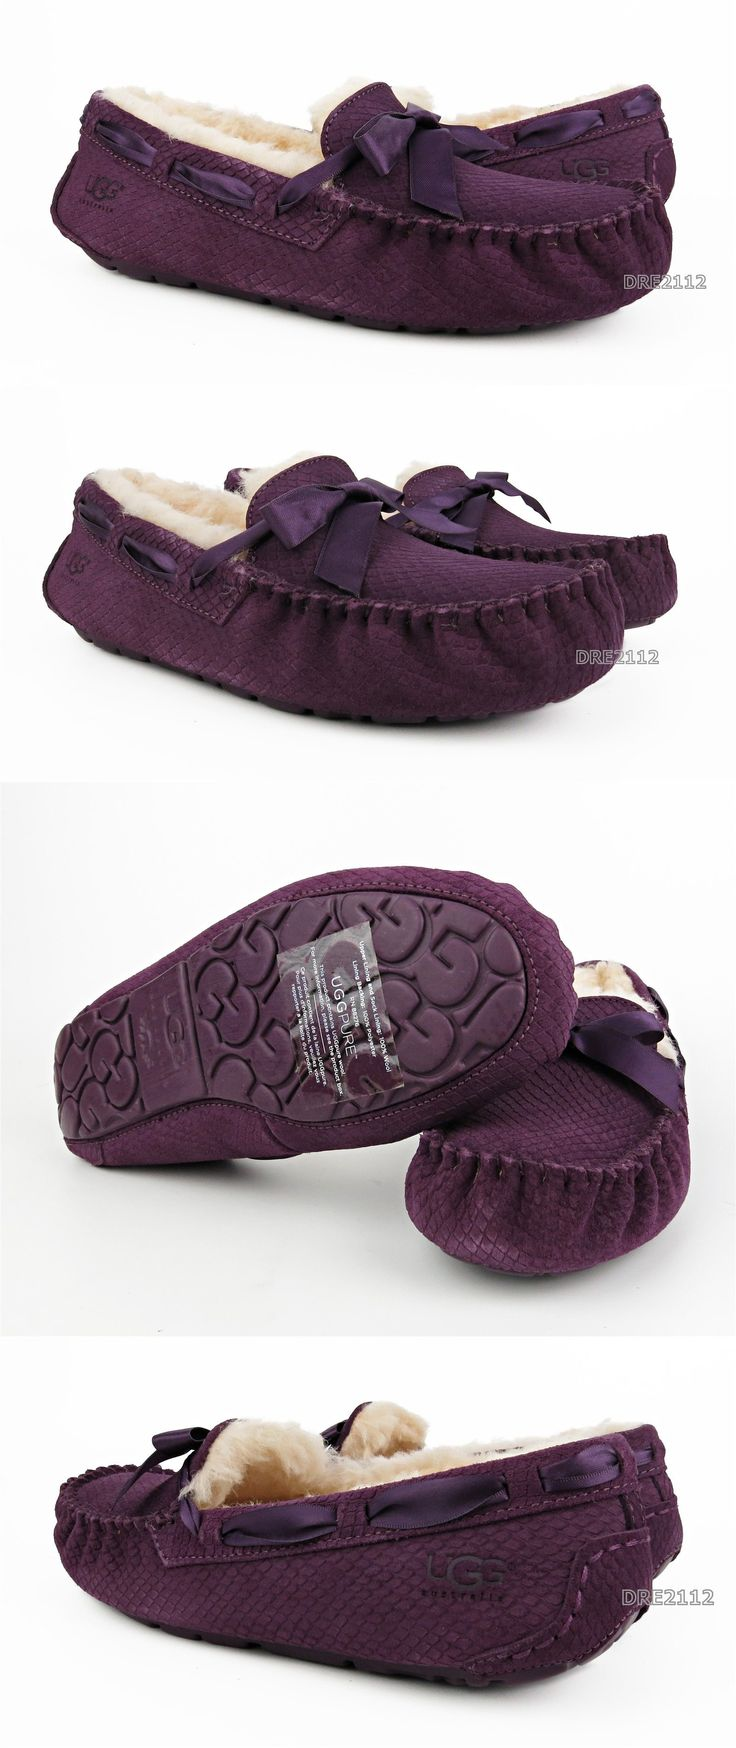 Slippers 11632: Ugg Australia Dakota Exotic Scales Anemone Purple Slippers Womens Size 8 *Nib* -> BUY IT NOW ONLY: $69.95 on eBay!